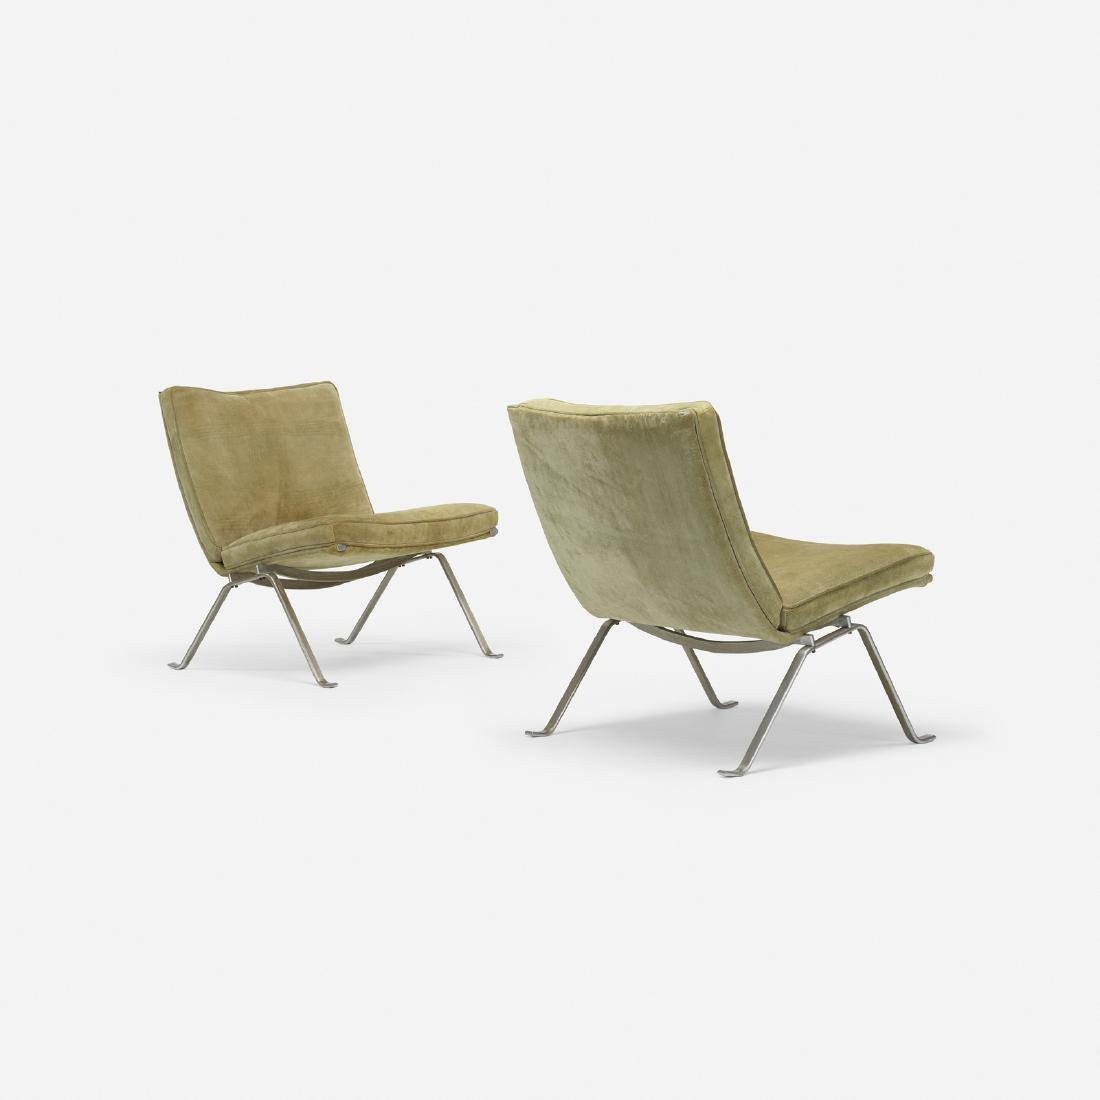 Poul Kjaerholm, PK 22 lounge chairs, pair